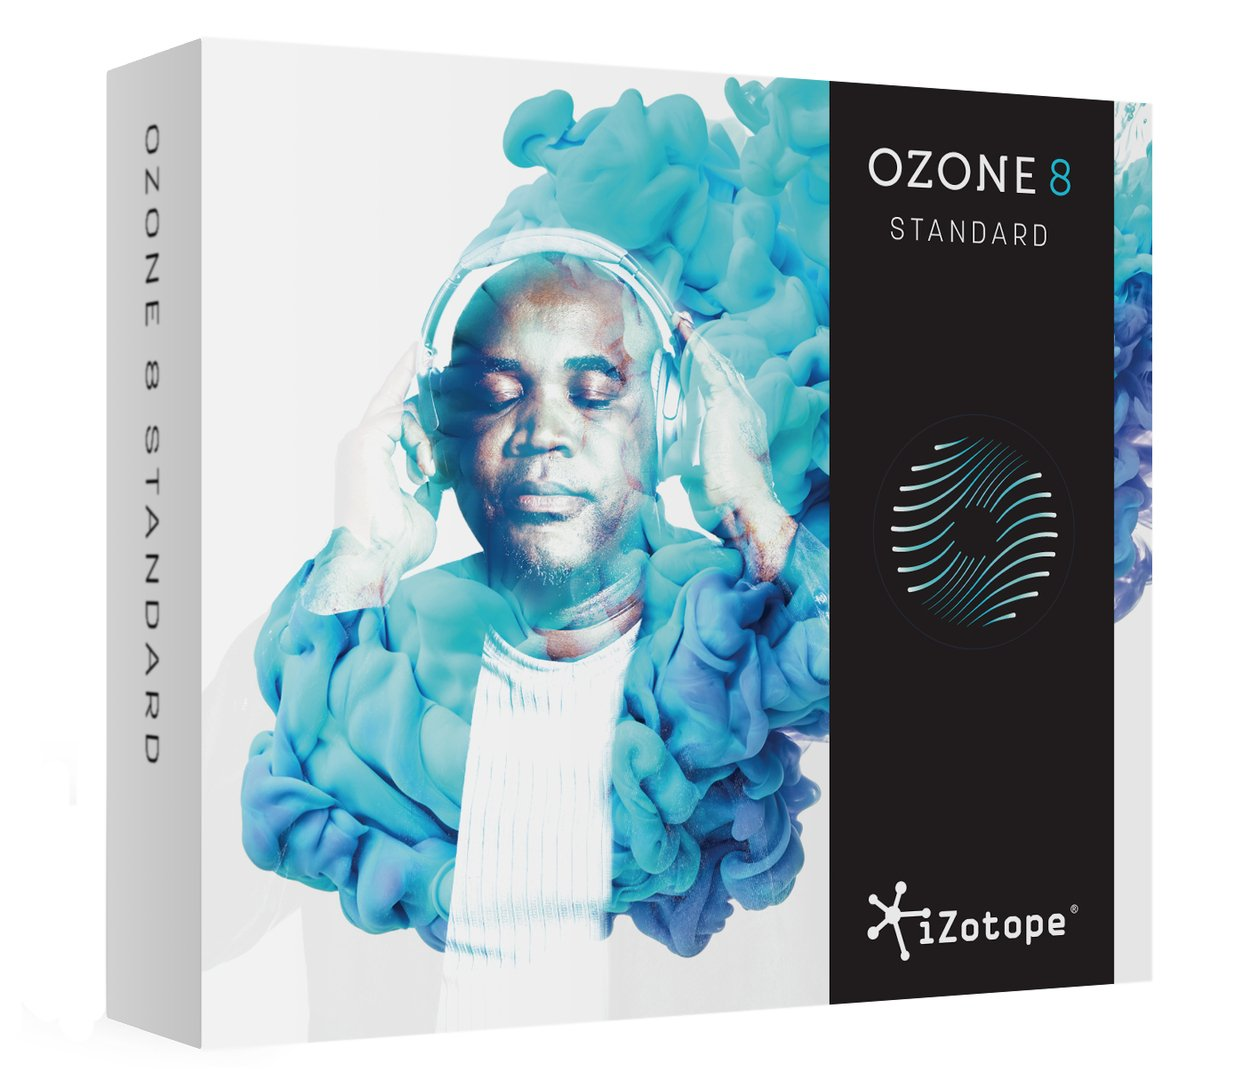 Upgrade from Ozone 7 Elements